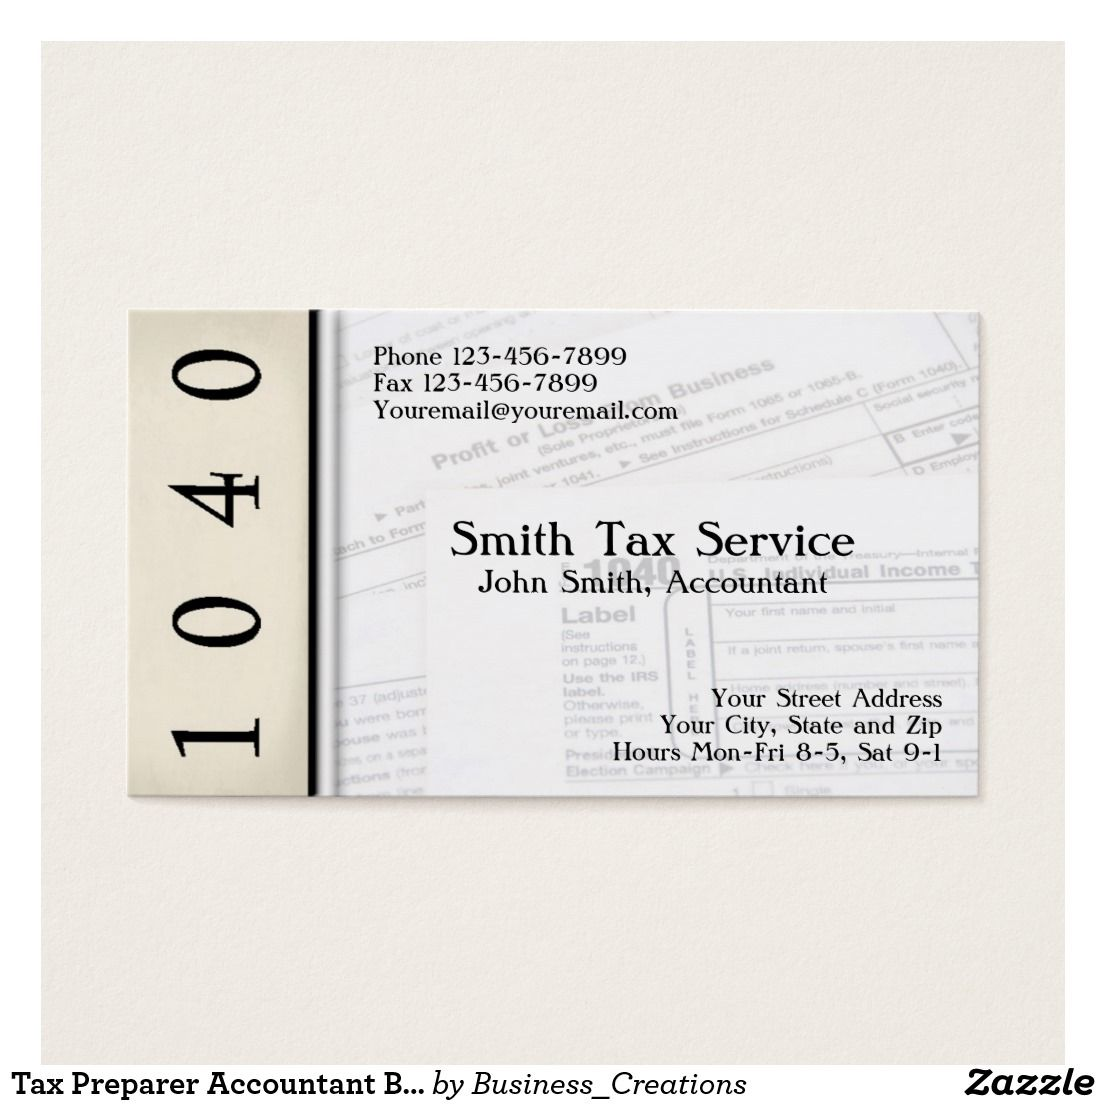 Tax Preparer Accountant Business Card | Business cards and Business